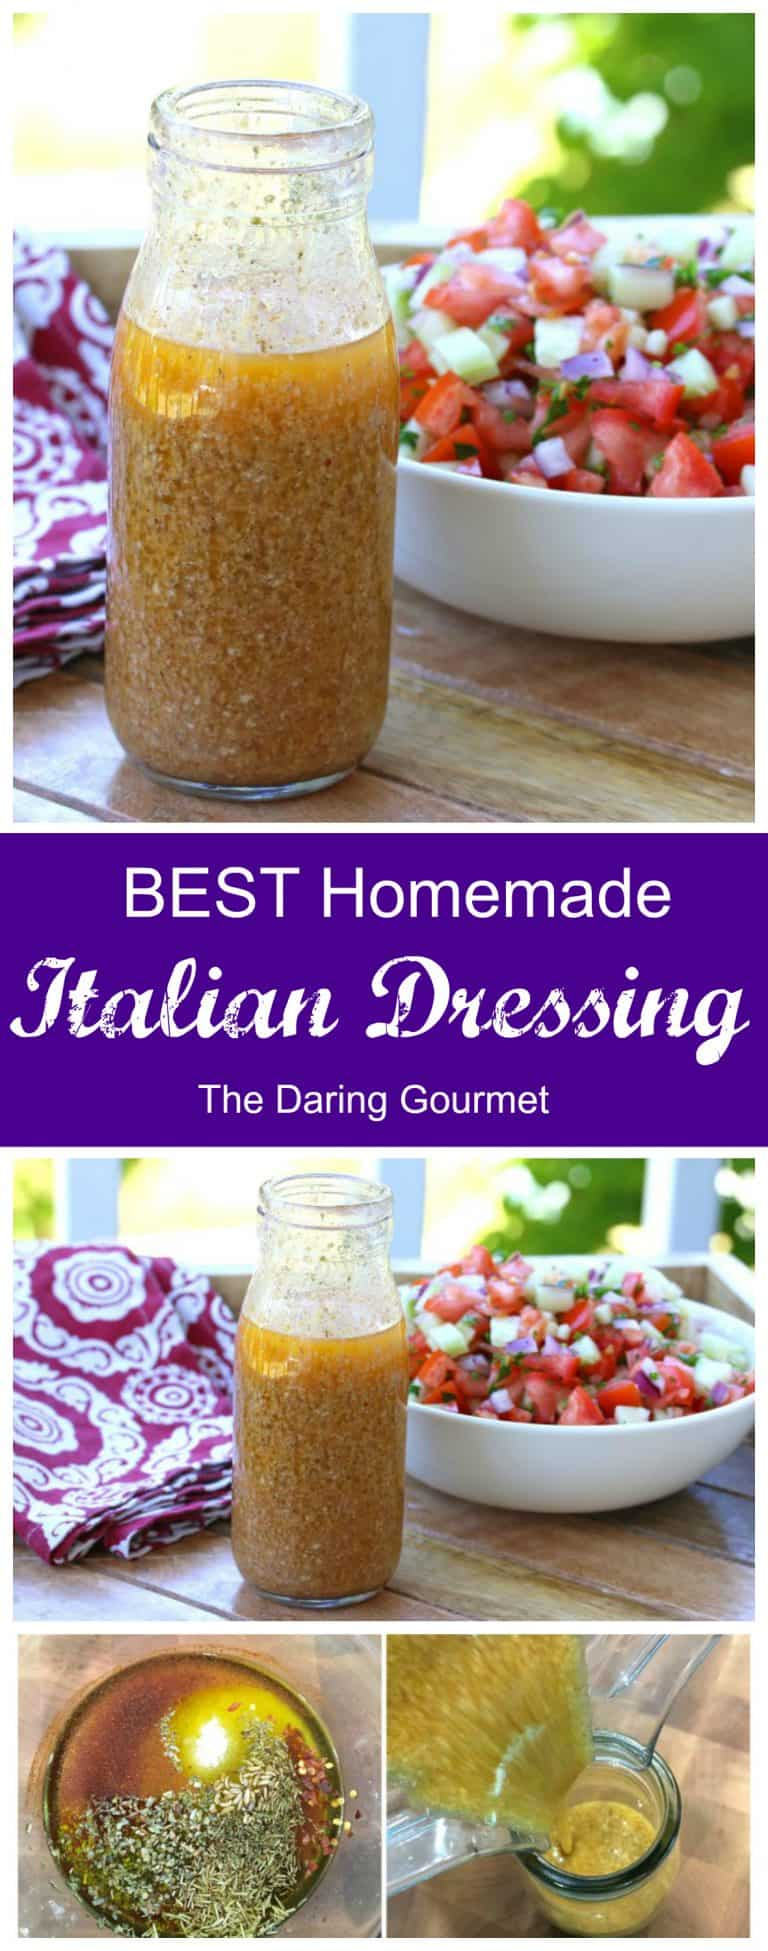 italian dressing recipe from scratch healthy best homemade